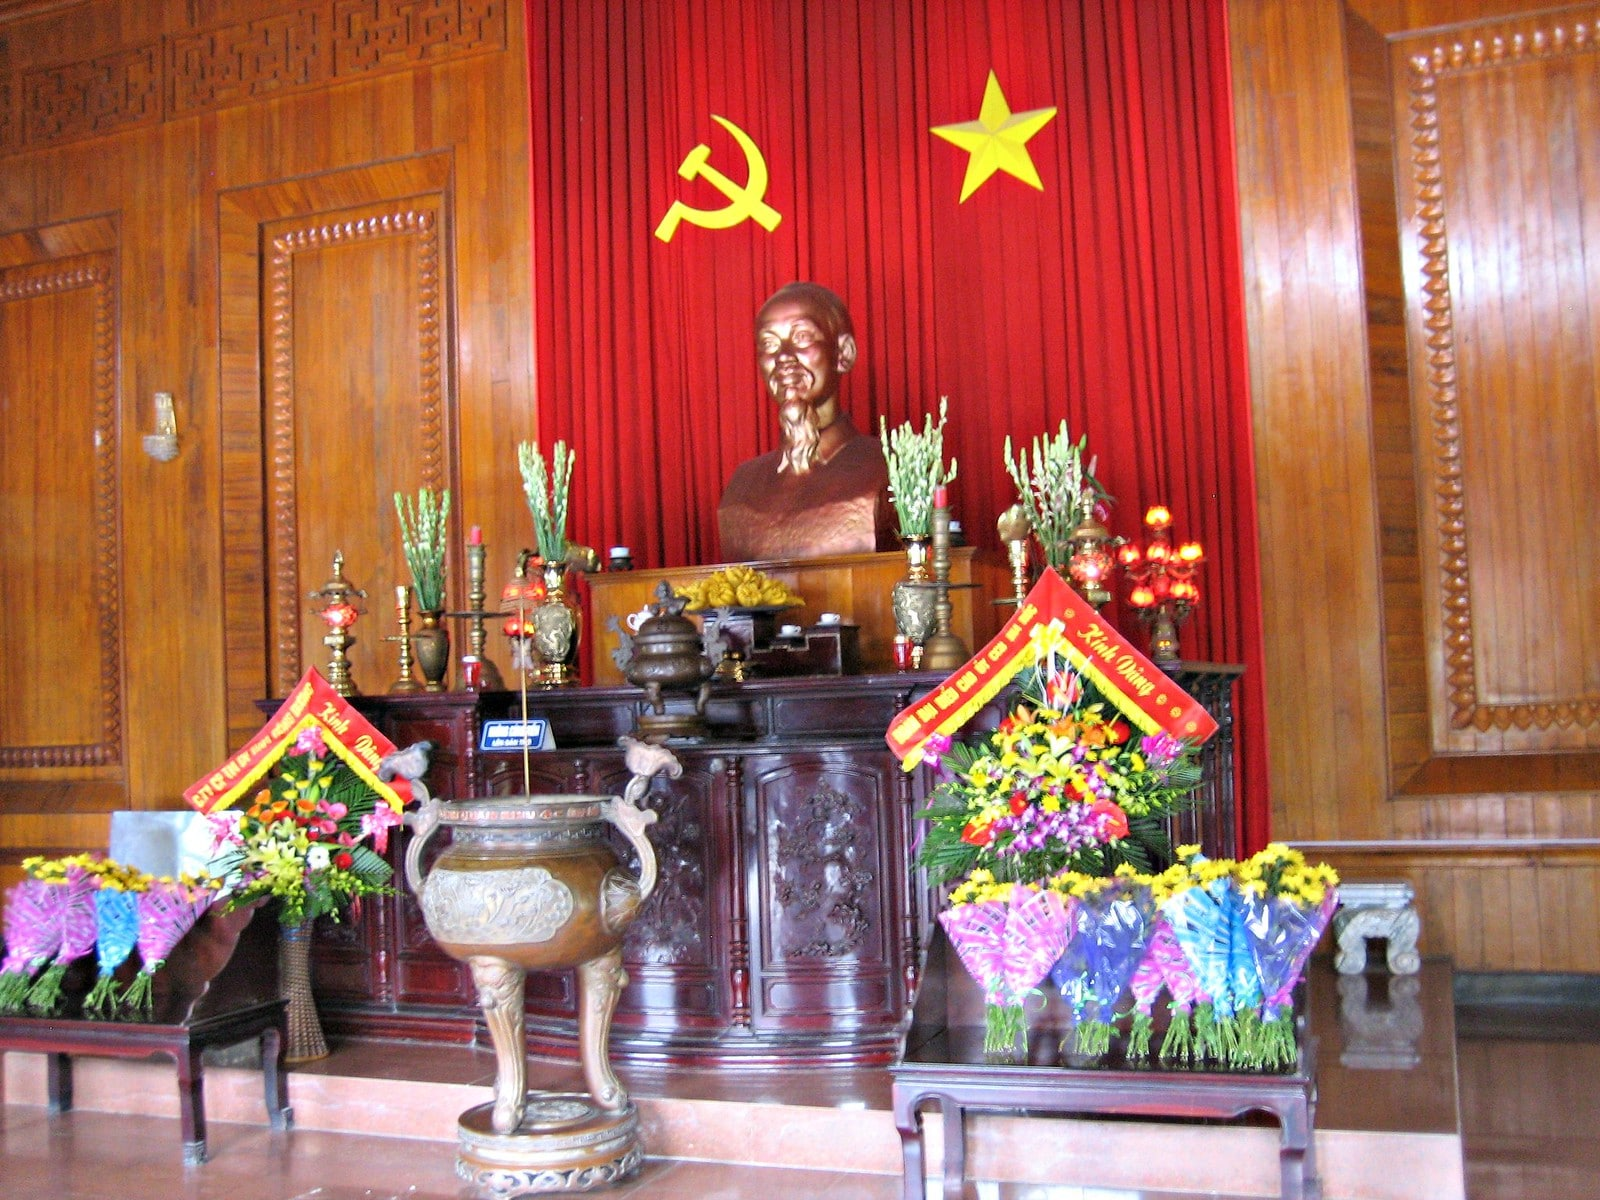 Shrine at Kim Lien in the Nghe An Province, Vietnam